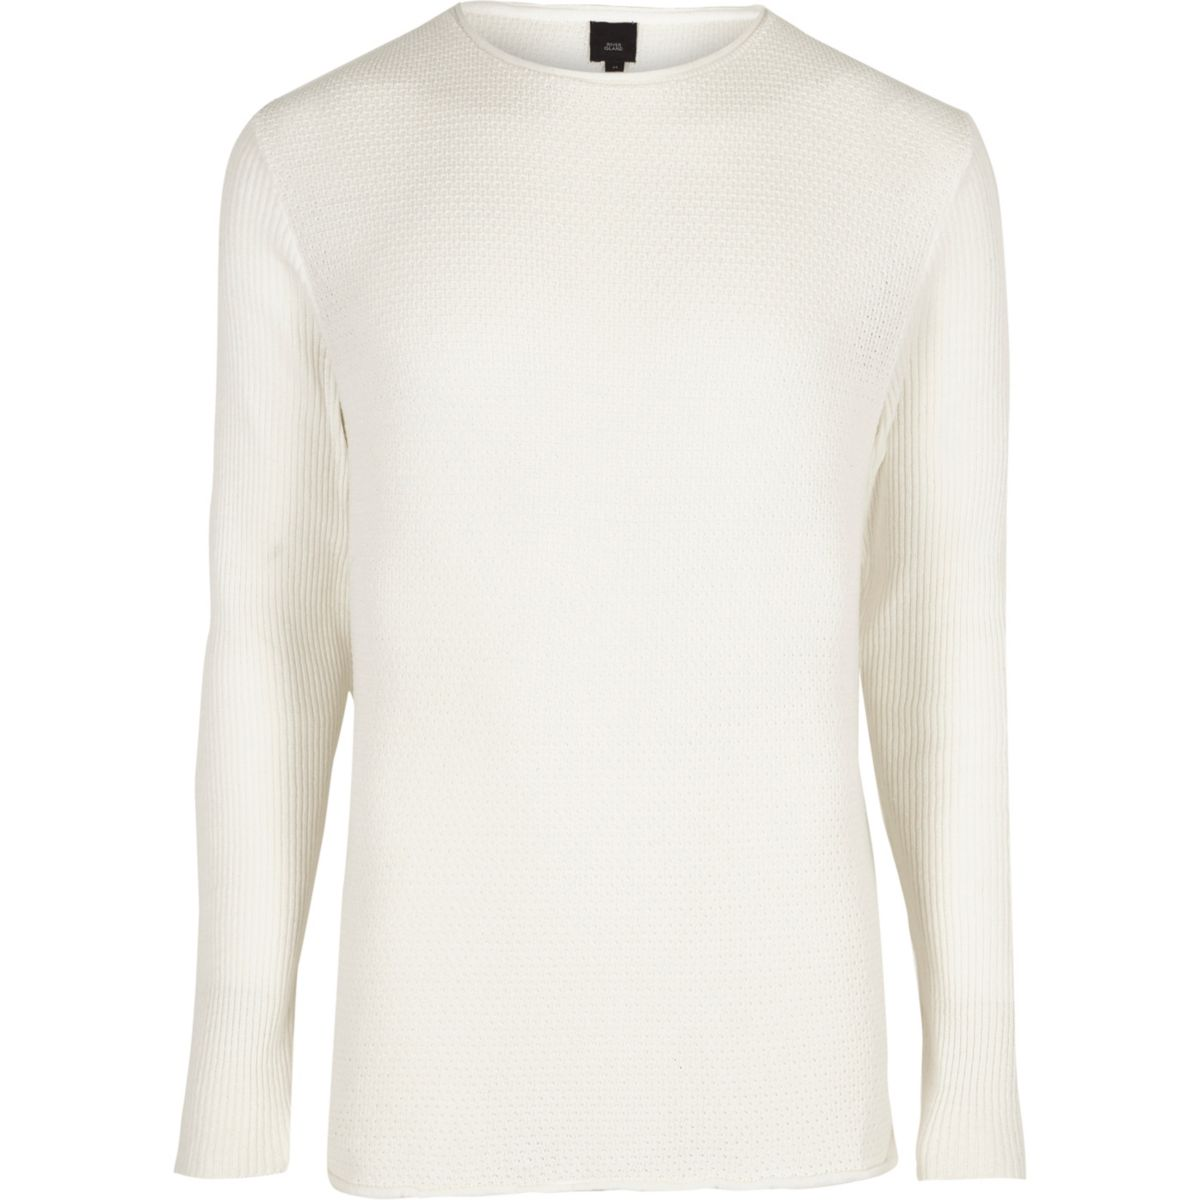 Cream rolled neck muscle fit jumper